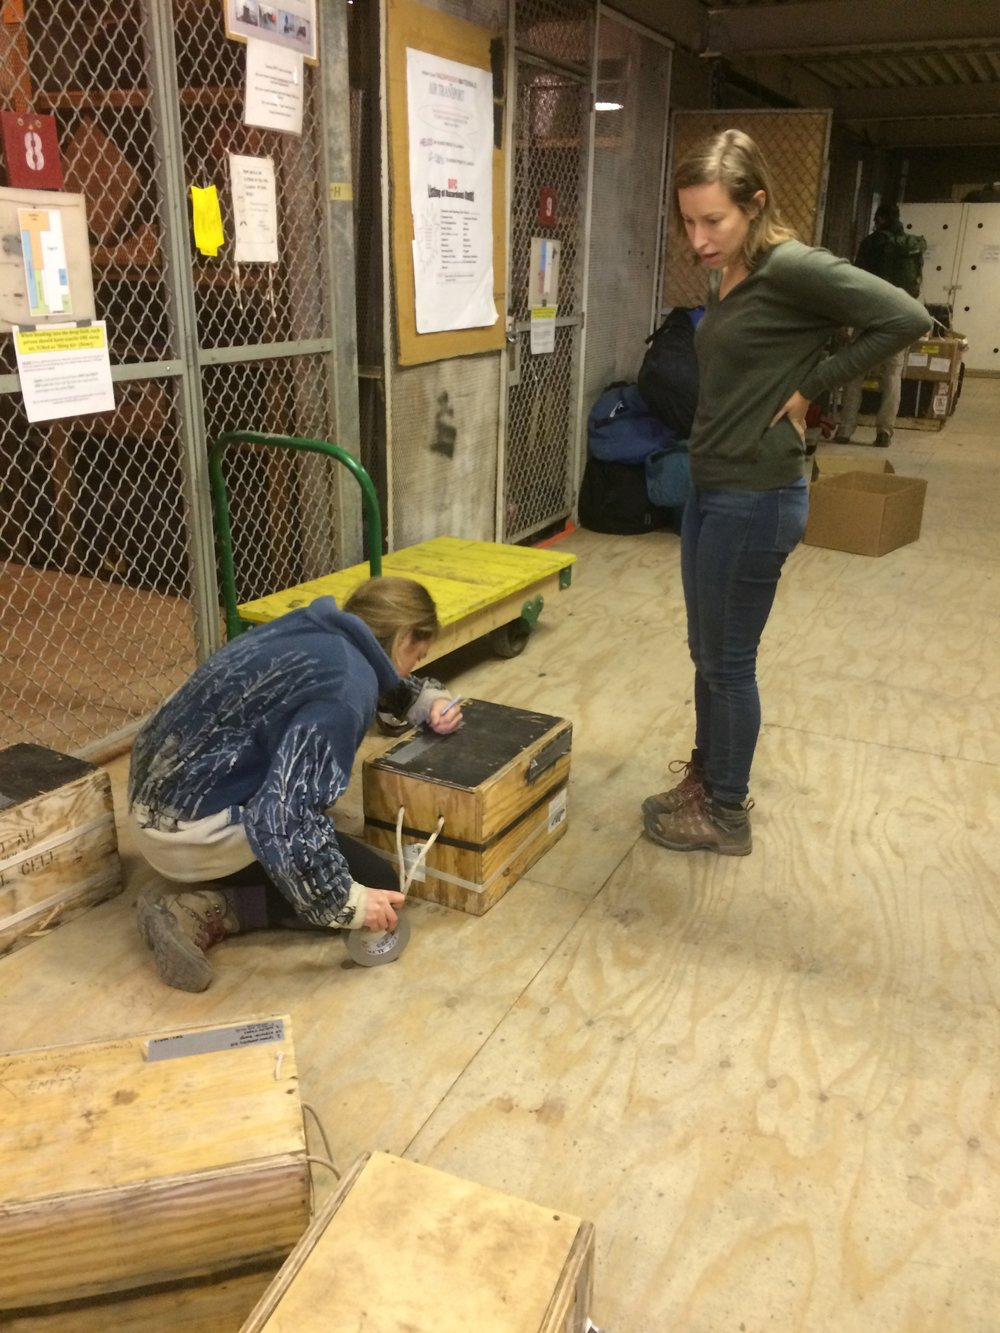 Emilie and me packing and labeling boxes in the Science Cargo Center